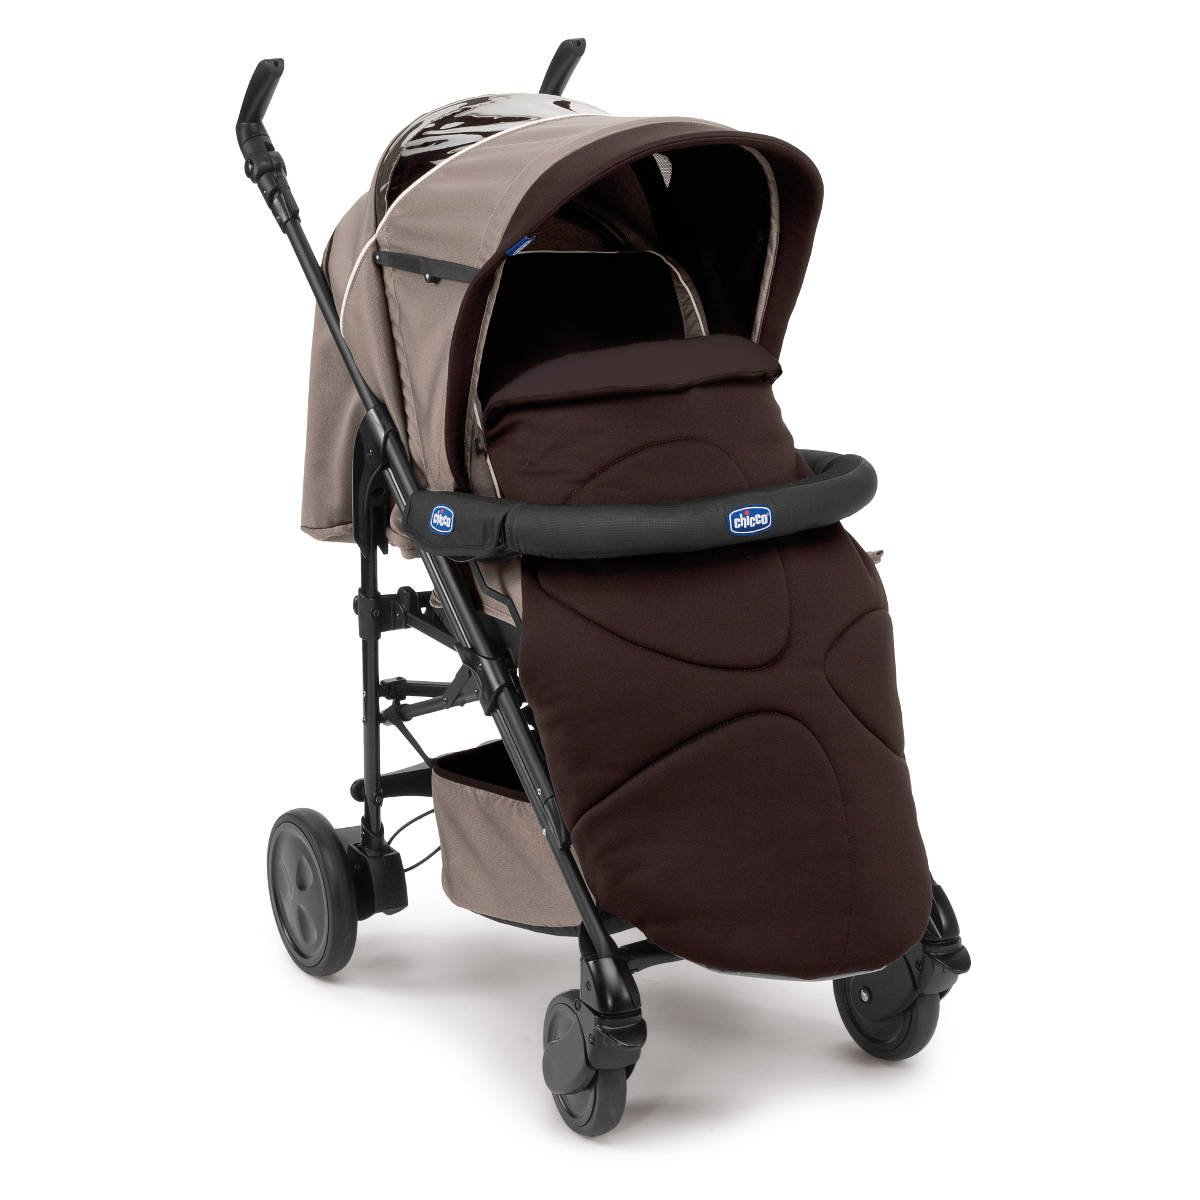 7d5735296 Chicco Trio Living Smart - stroller, brown: Amazon.co.uk: Baby